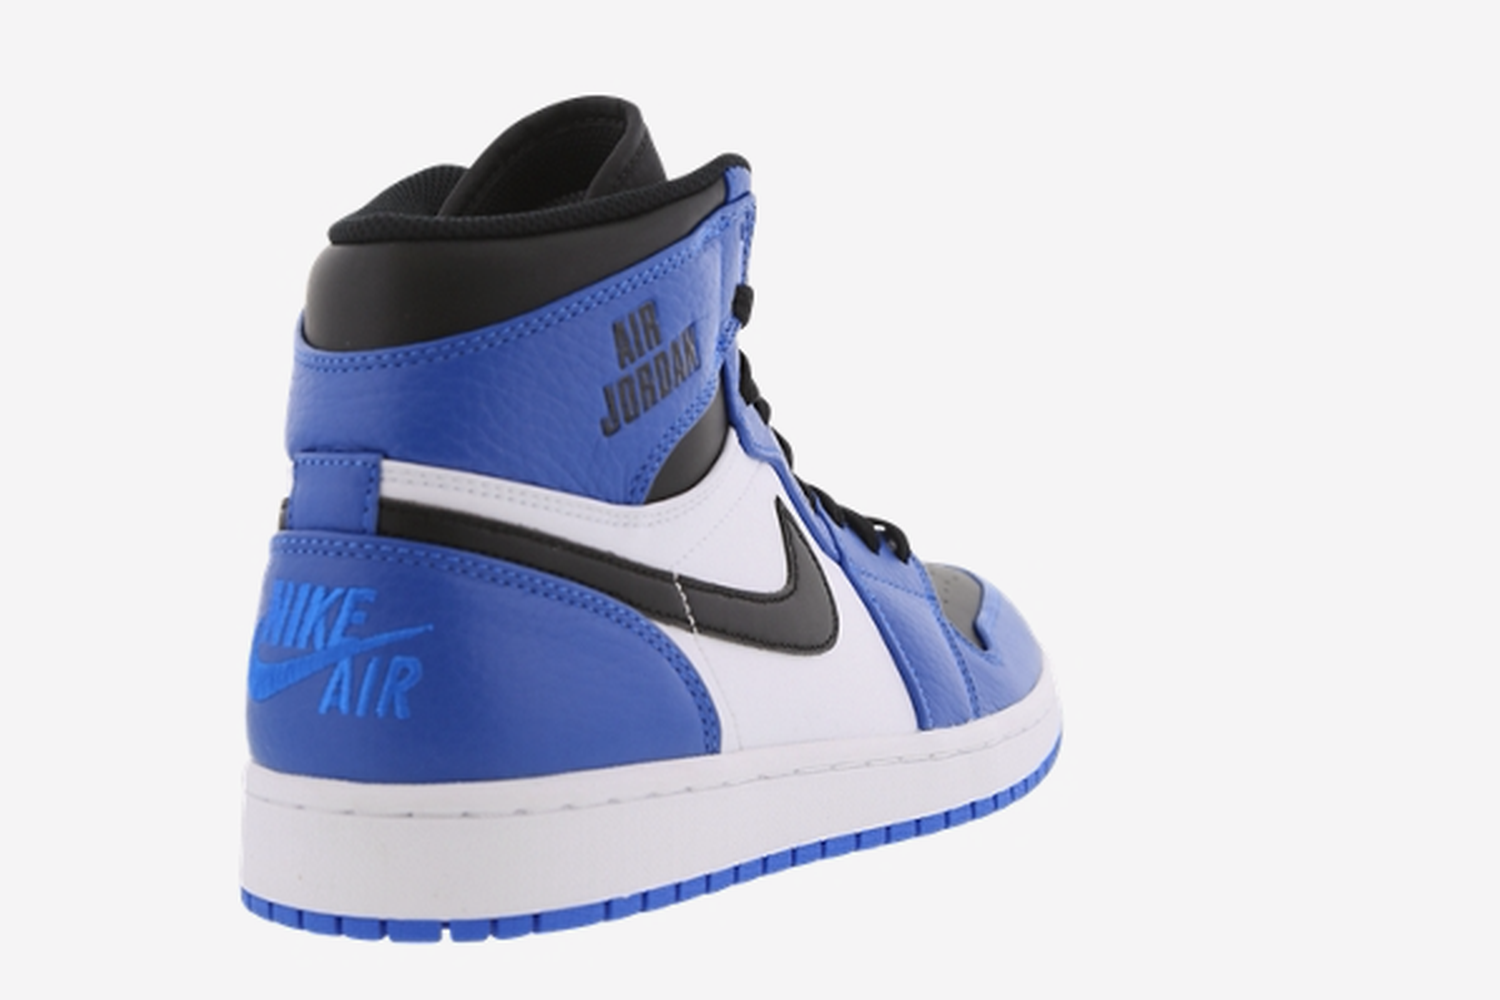 Retro Hi ''RARE AIR''